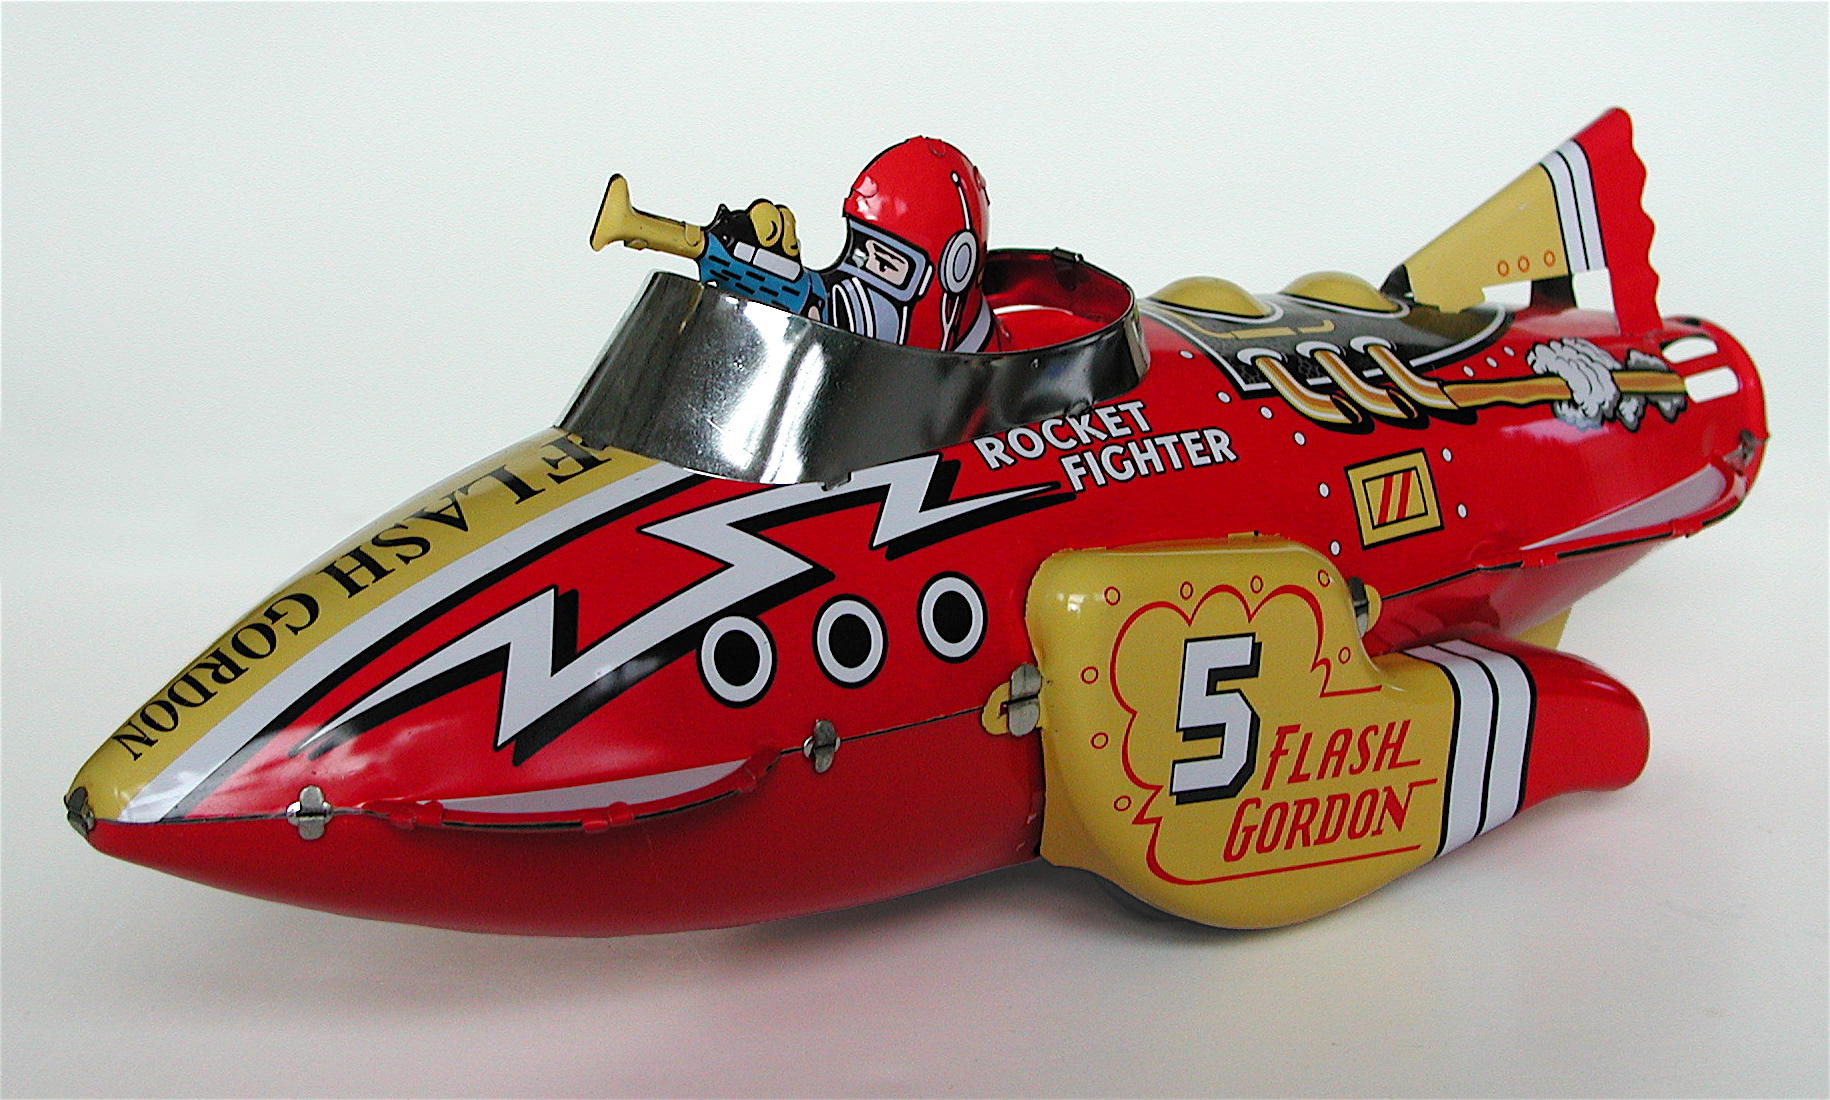 Here is a wonderful flying Flash Gordon rocket ship. One of Max Teller's favorites. www.salemhousepress.com